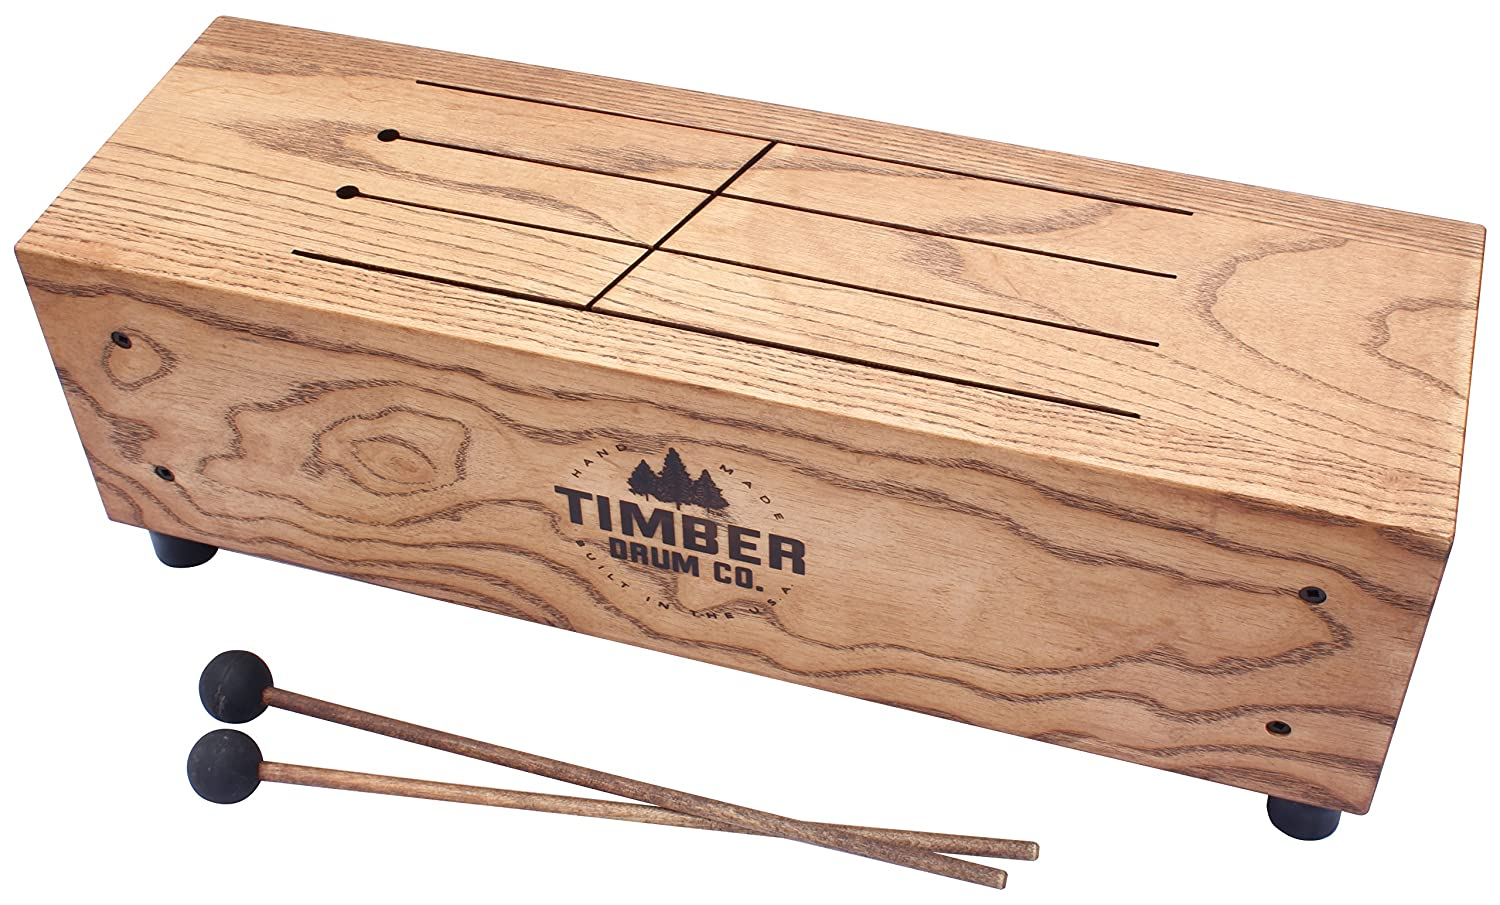 Timber Drum Co. T18-M Made in USA Slit Tongue Log Drum with Mallets (VIDEO) Timber Drum Company